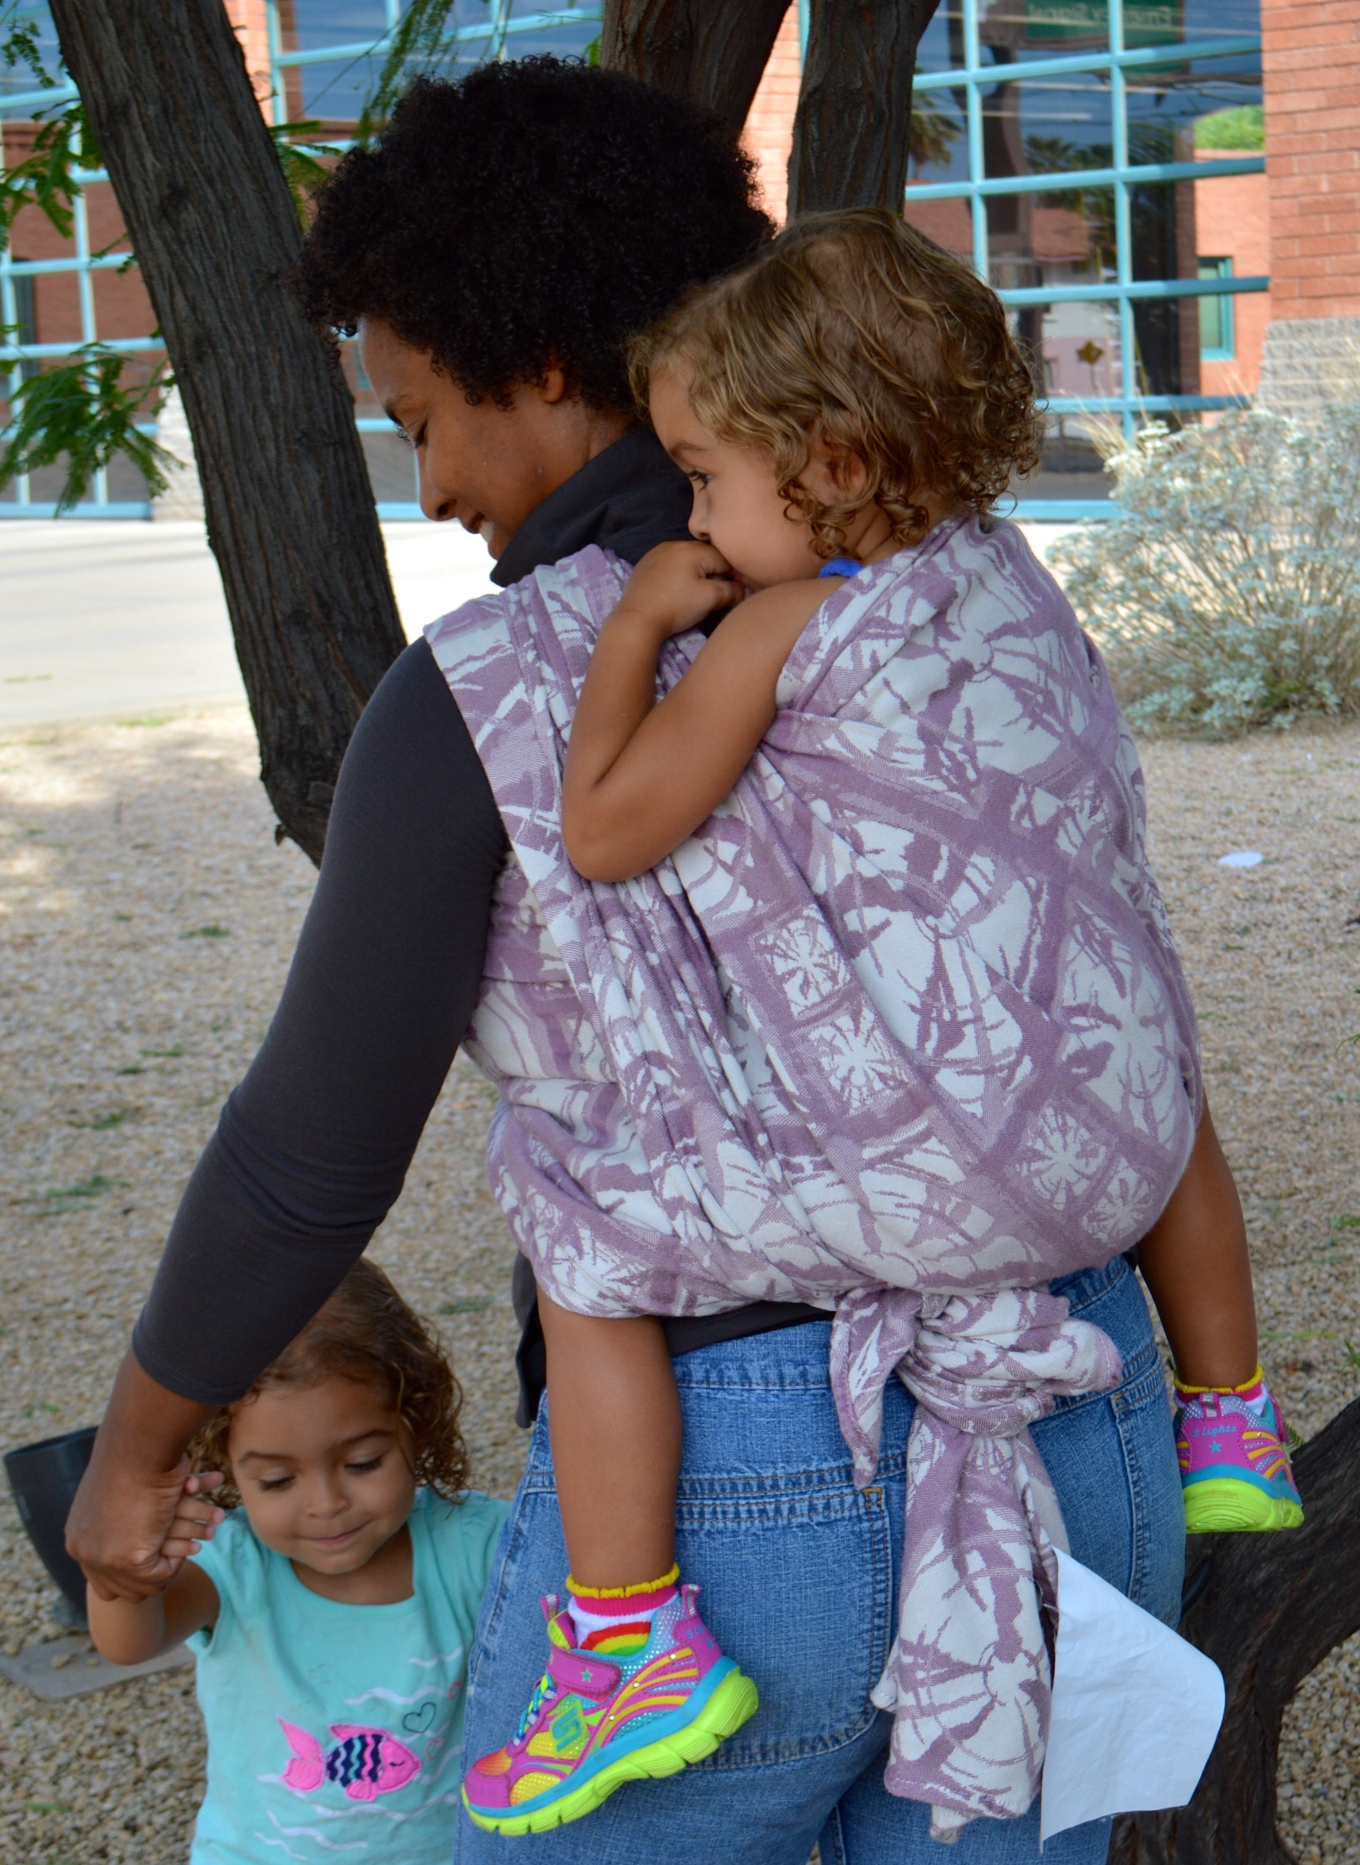 Medium Brown momma with Natural hair wears blond baby in neon colored shoes in pale purple and white wrap on her back. She is hands free to hold her other baby's hands and dance outside the fire station.